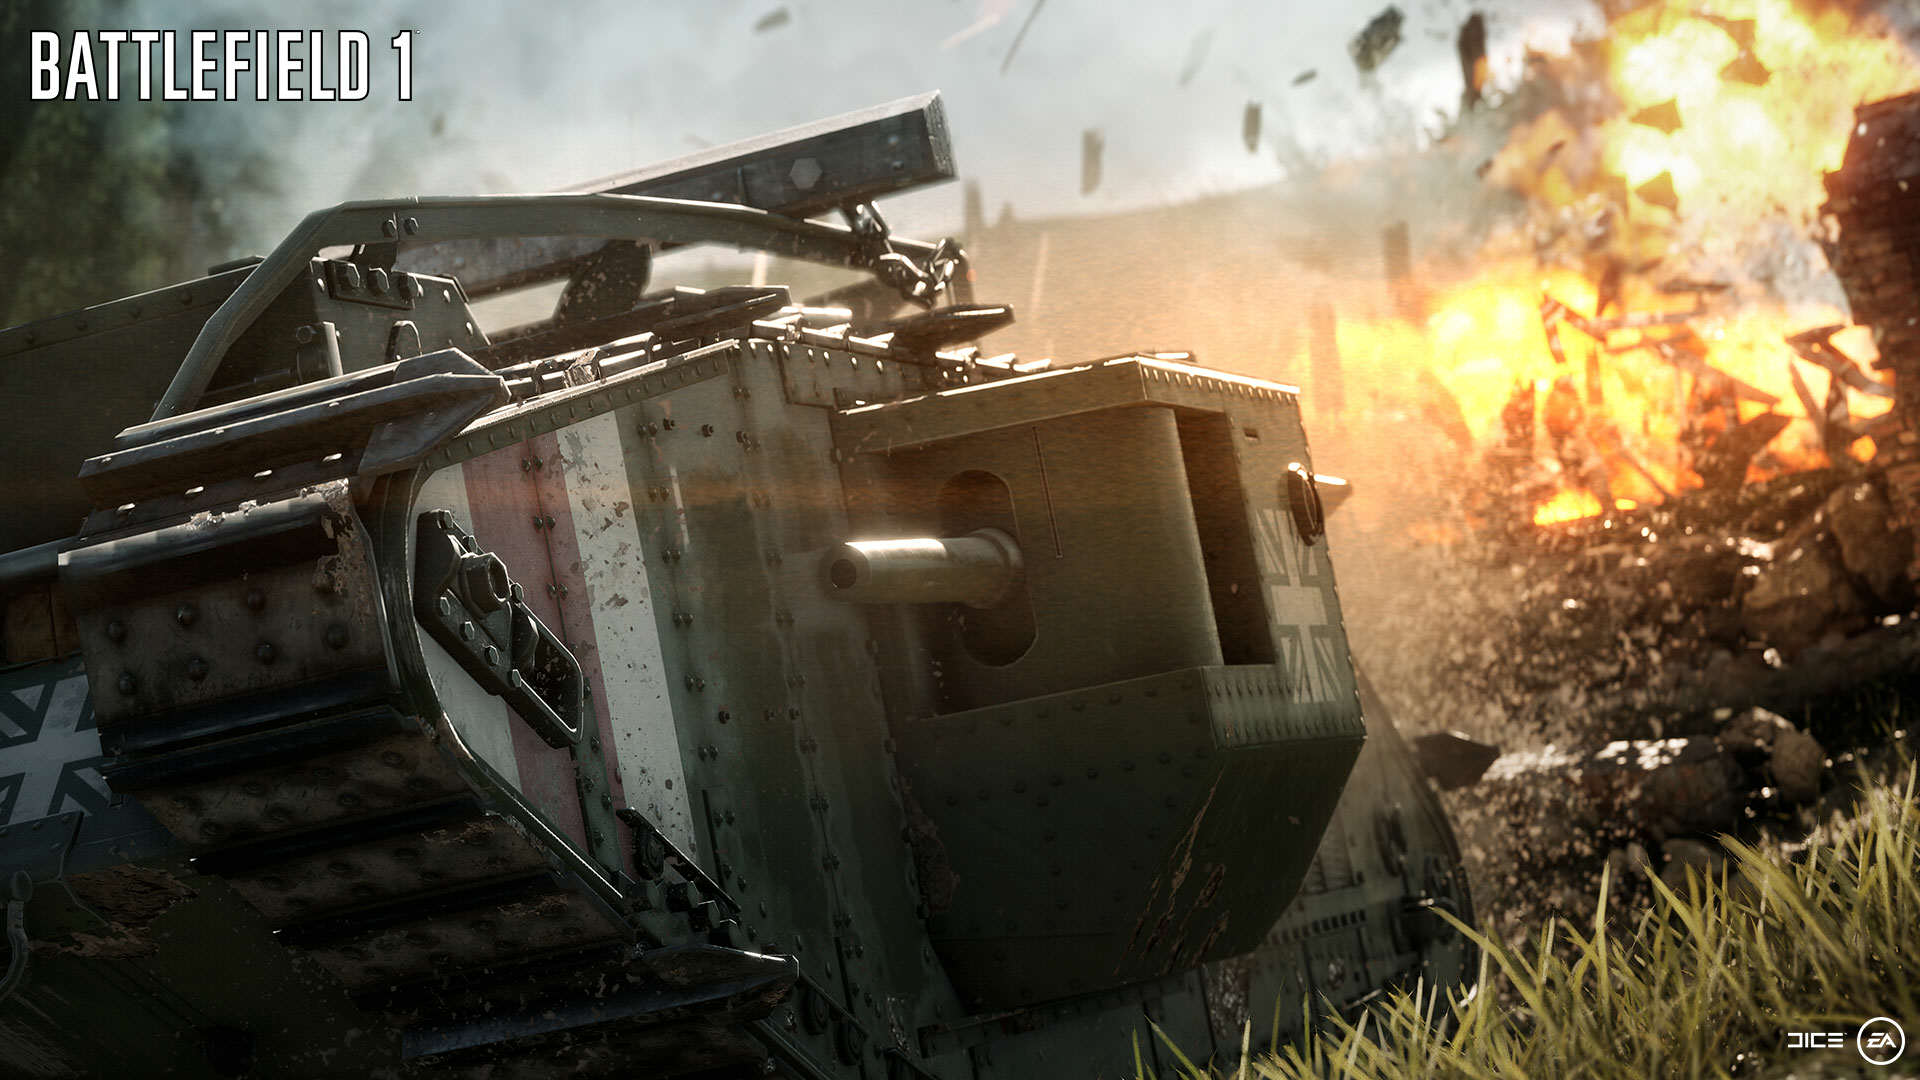 BF1 EA PLAY 02 DESTRUCTION WM Battlefield 1 Gets Epic New Trailer And Gameplay Features